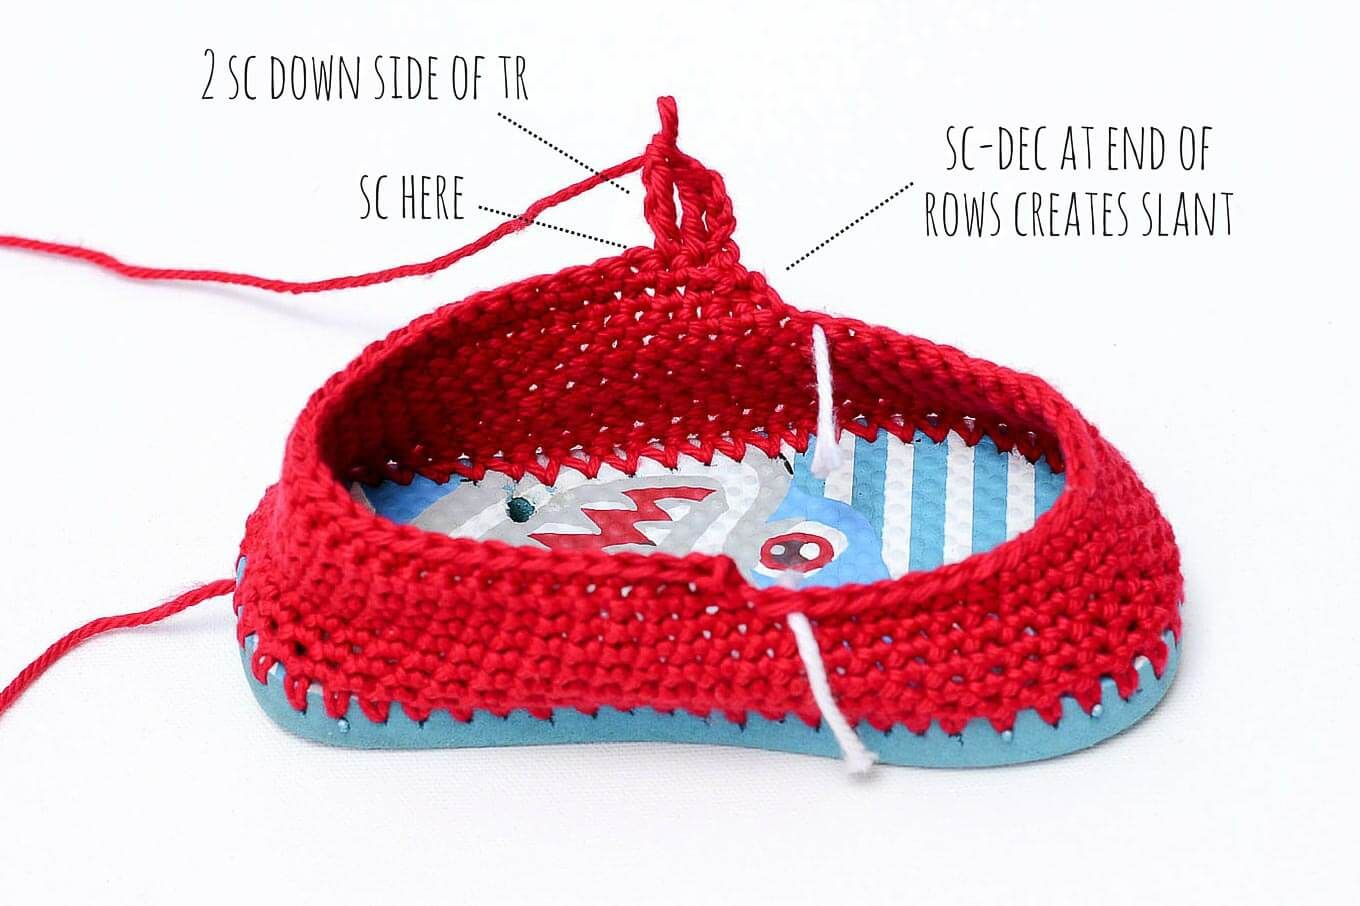 238647e39fdf Turn cheap flip flops into crochet toddler slippers with this free pattern.  The boat shoe style works well for girls and boys. Quick and easy project to  ...